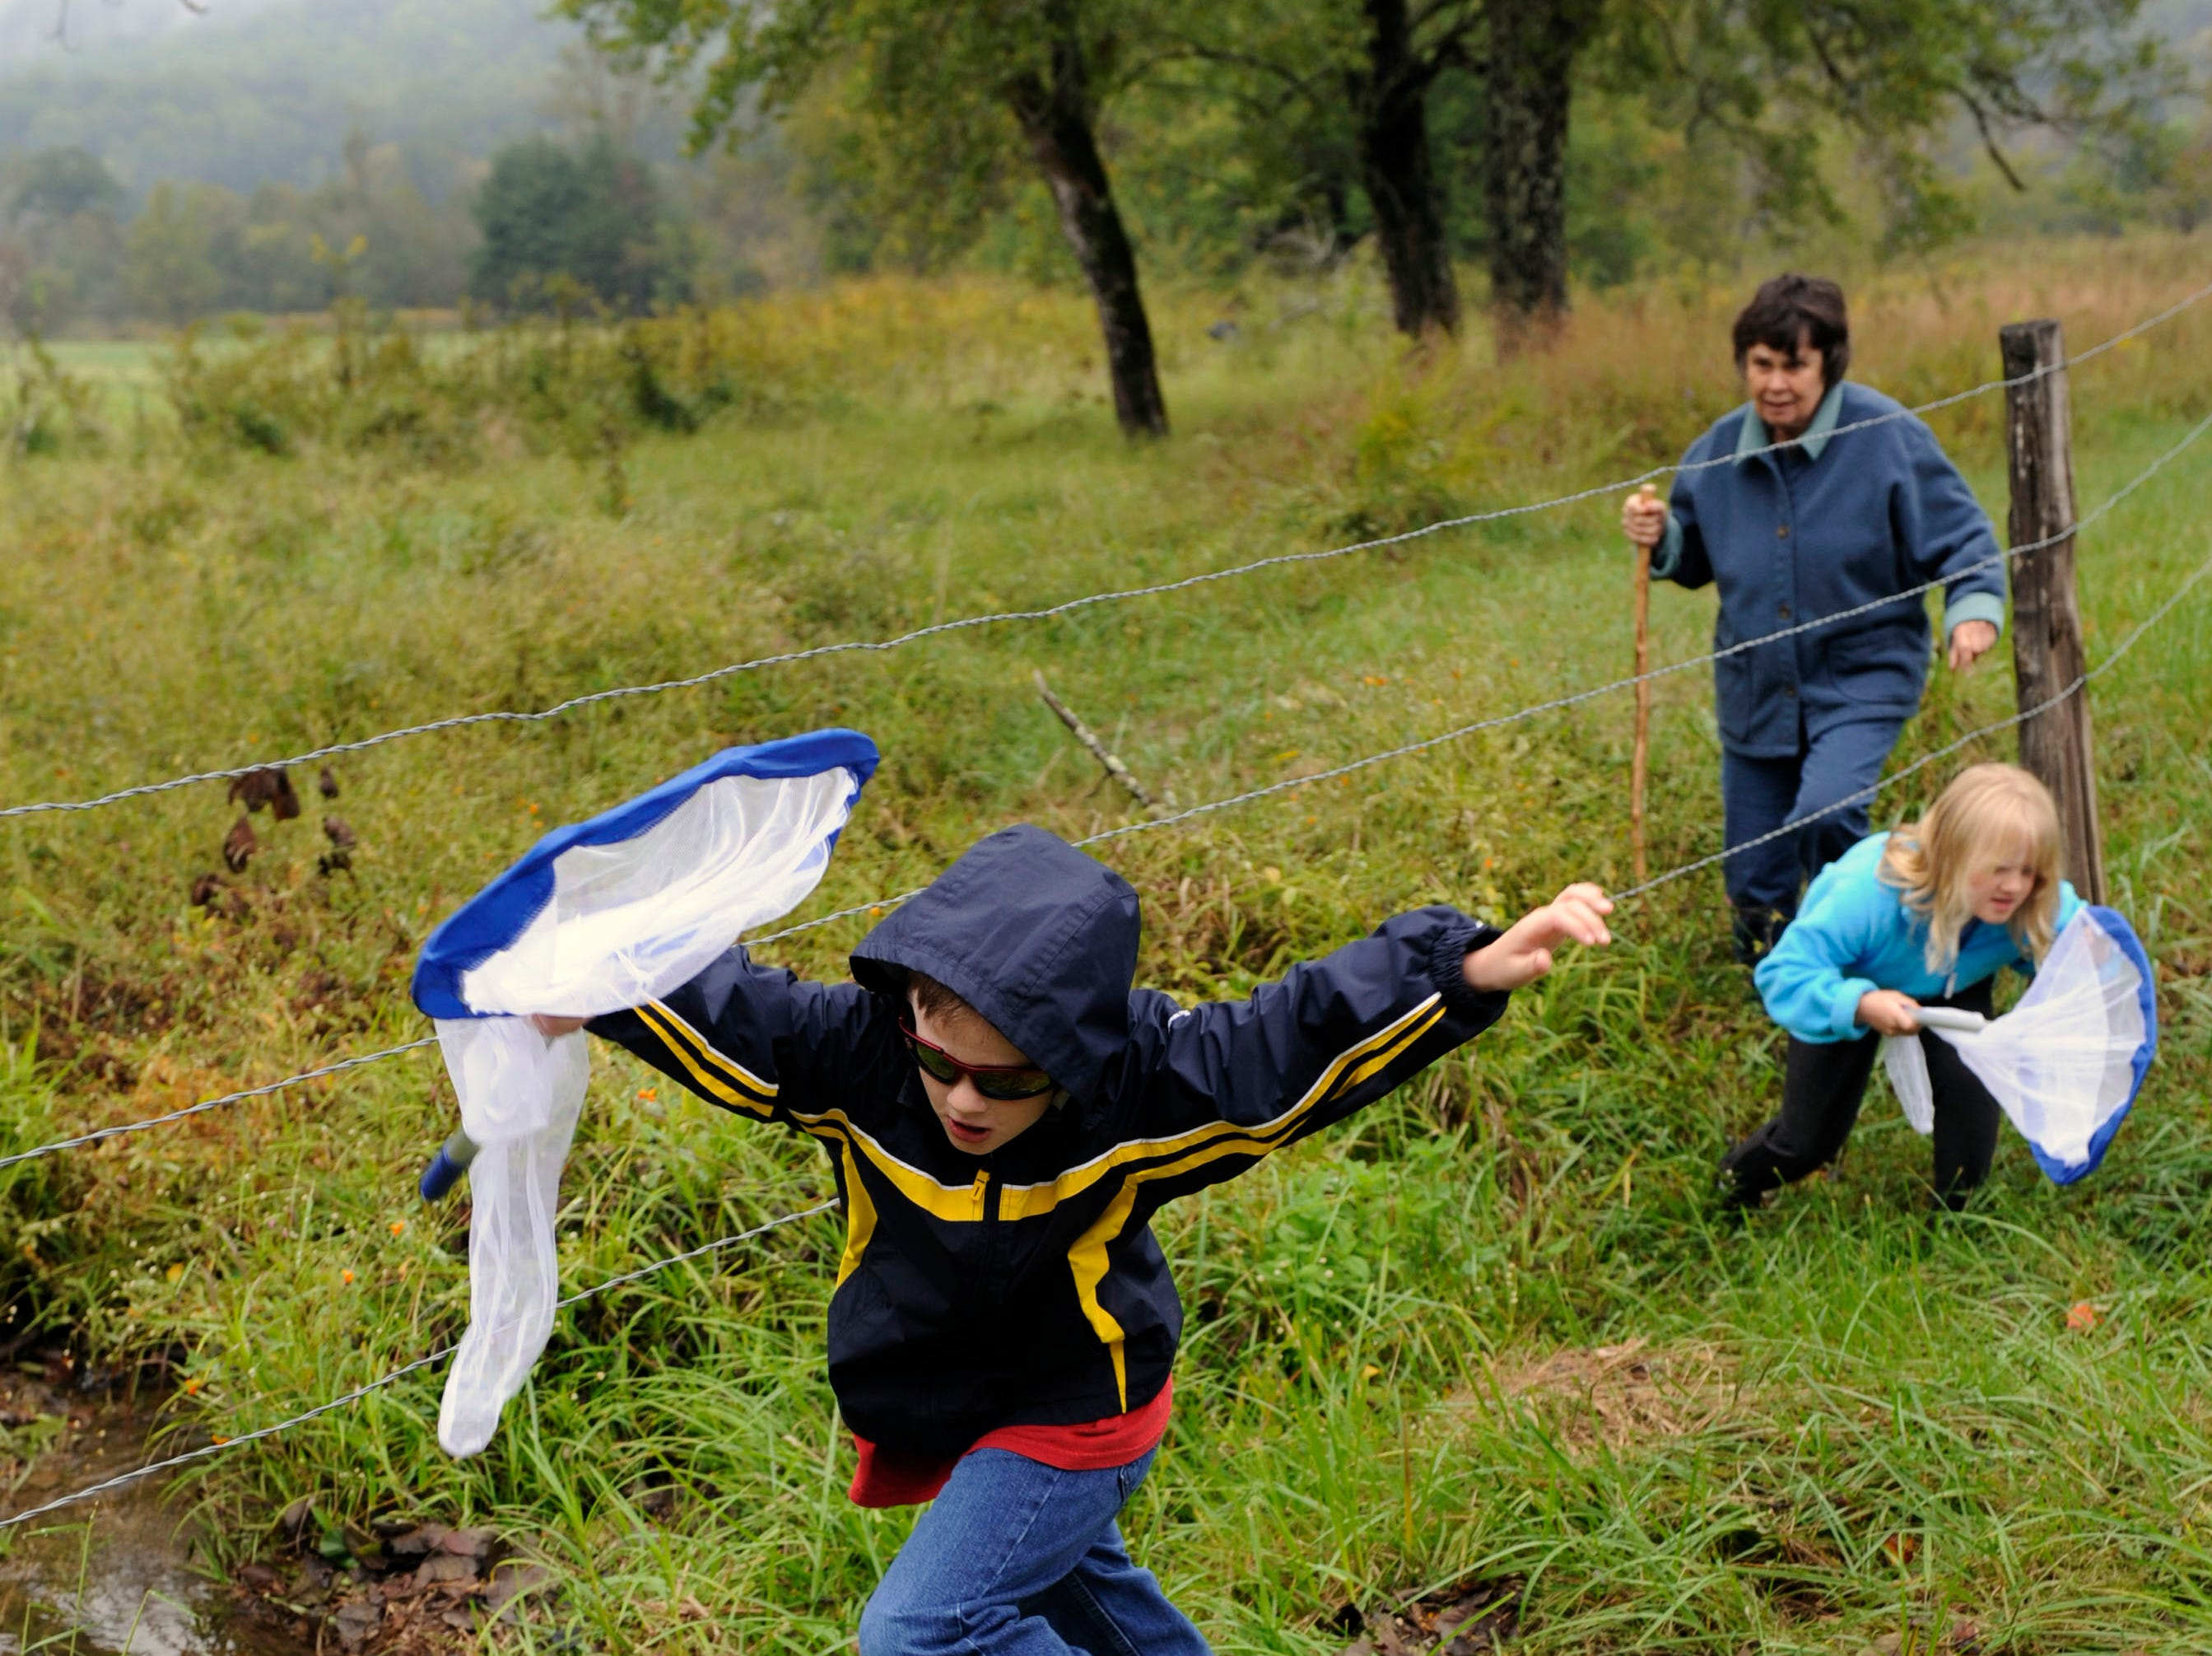 Danny Mick, 7, leaps over a stream of water while his twin sister Emma comes under the fence following him during a butterfly banding class  Tuesday, Sep. 28, 2010 in Cades Cove in the Smoky Mountains National Park. Another class member Ida Mae Patteson (cq) is top right.